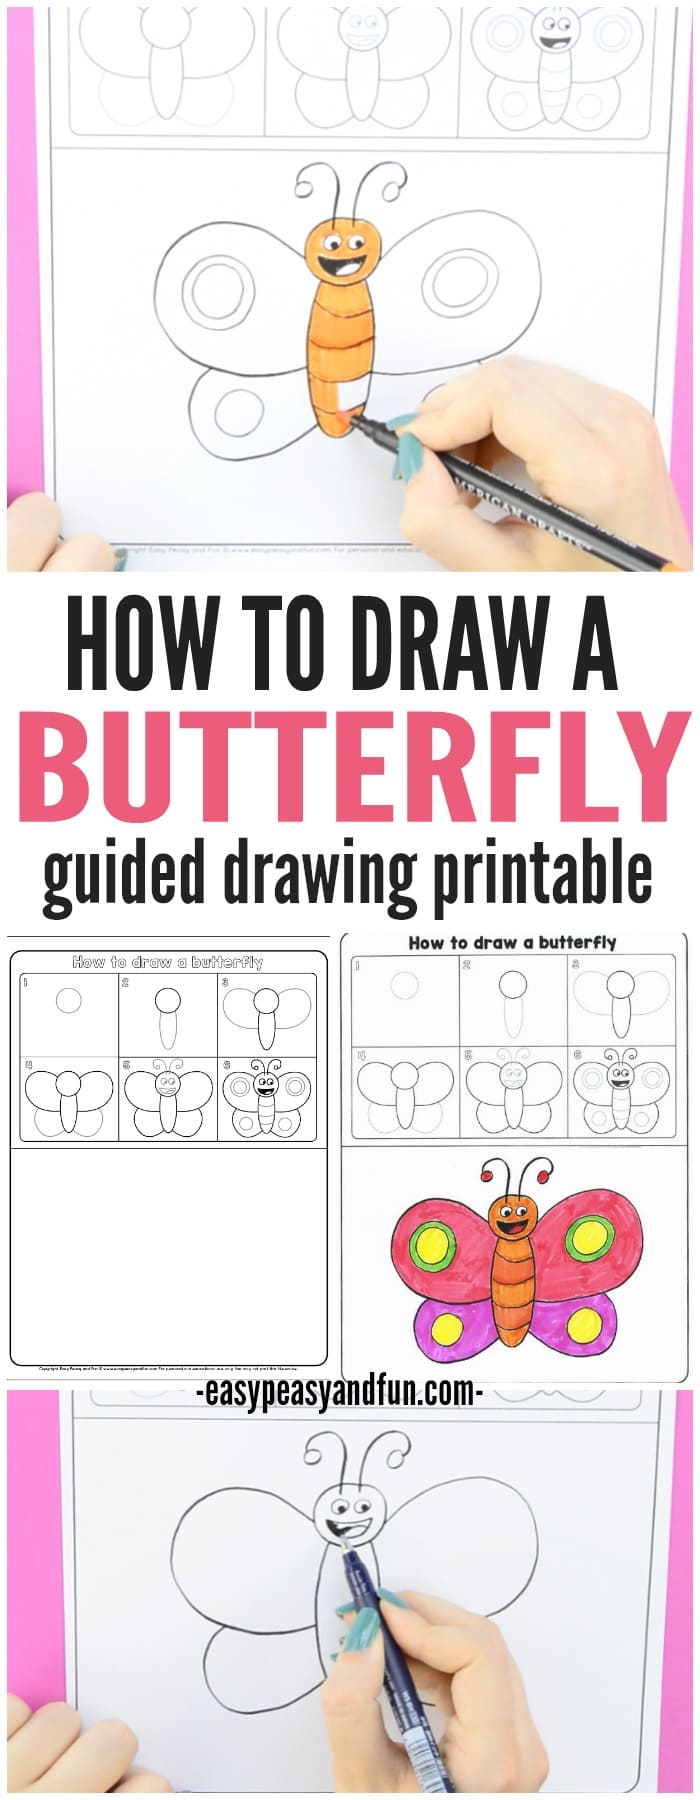 How to Draw a Butterfly Step by Step Guided Drawing for Kids